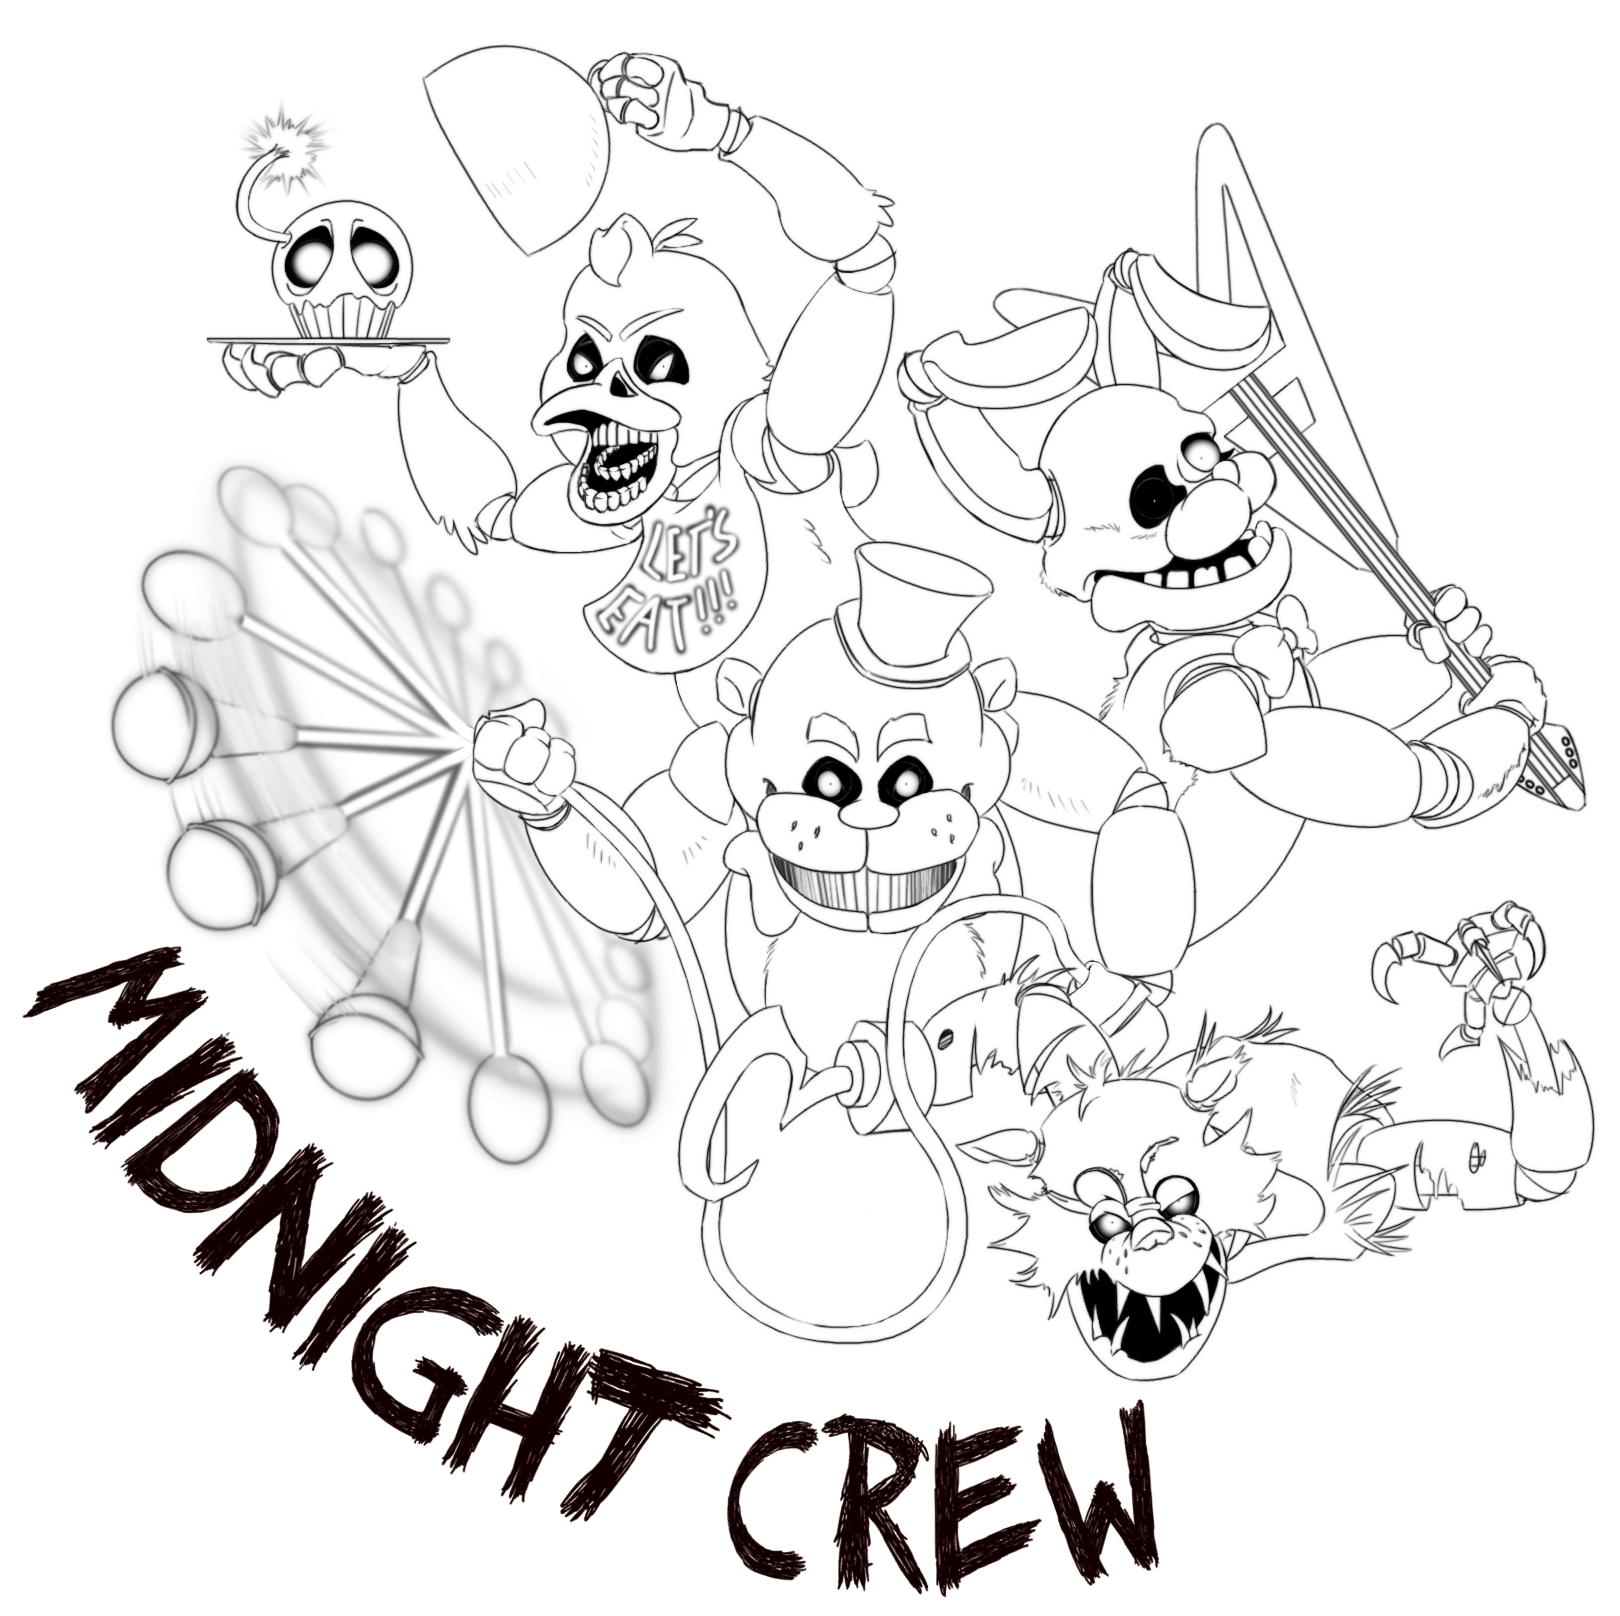 1620x1616 Sampler Fnaf Coloring Pages All Characters To Print For Kids